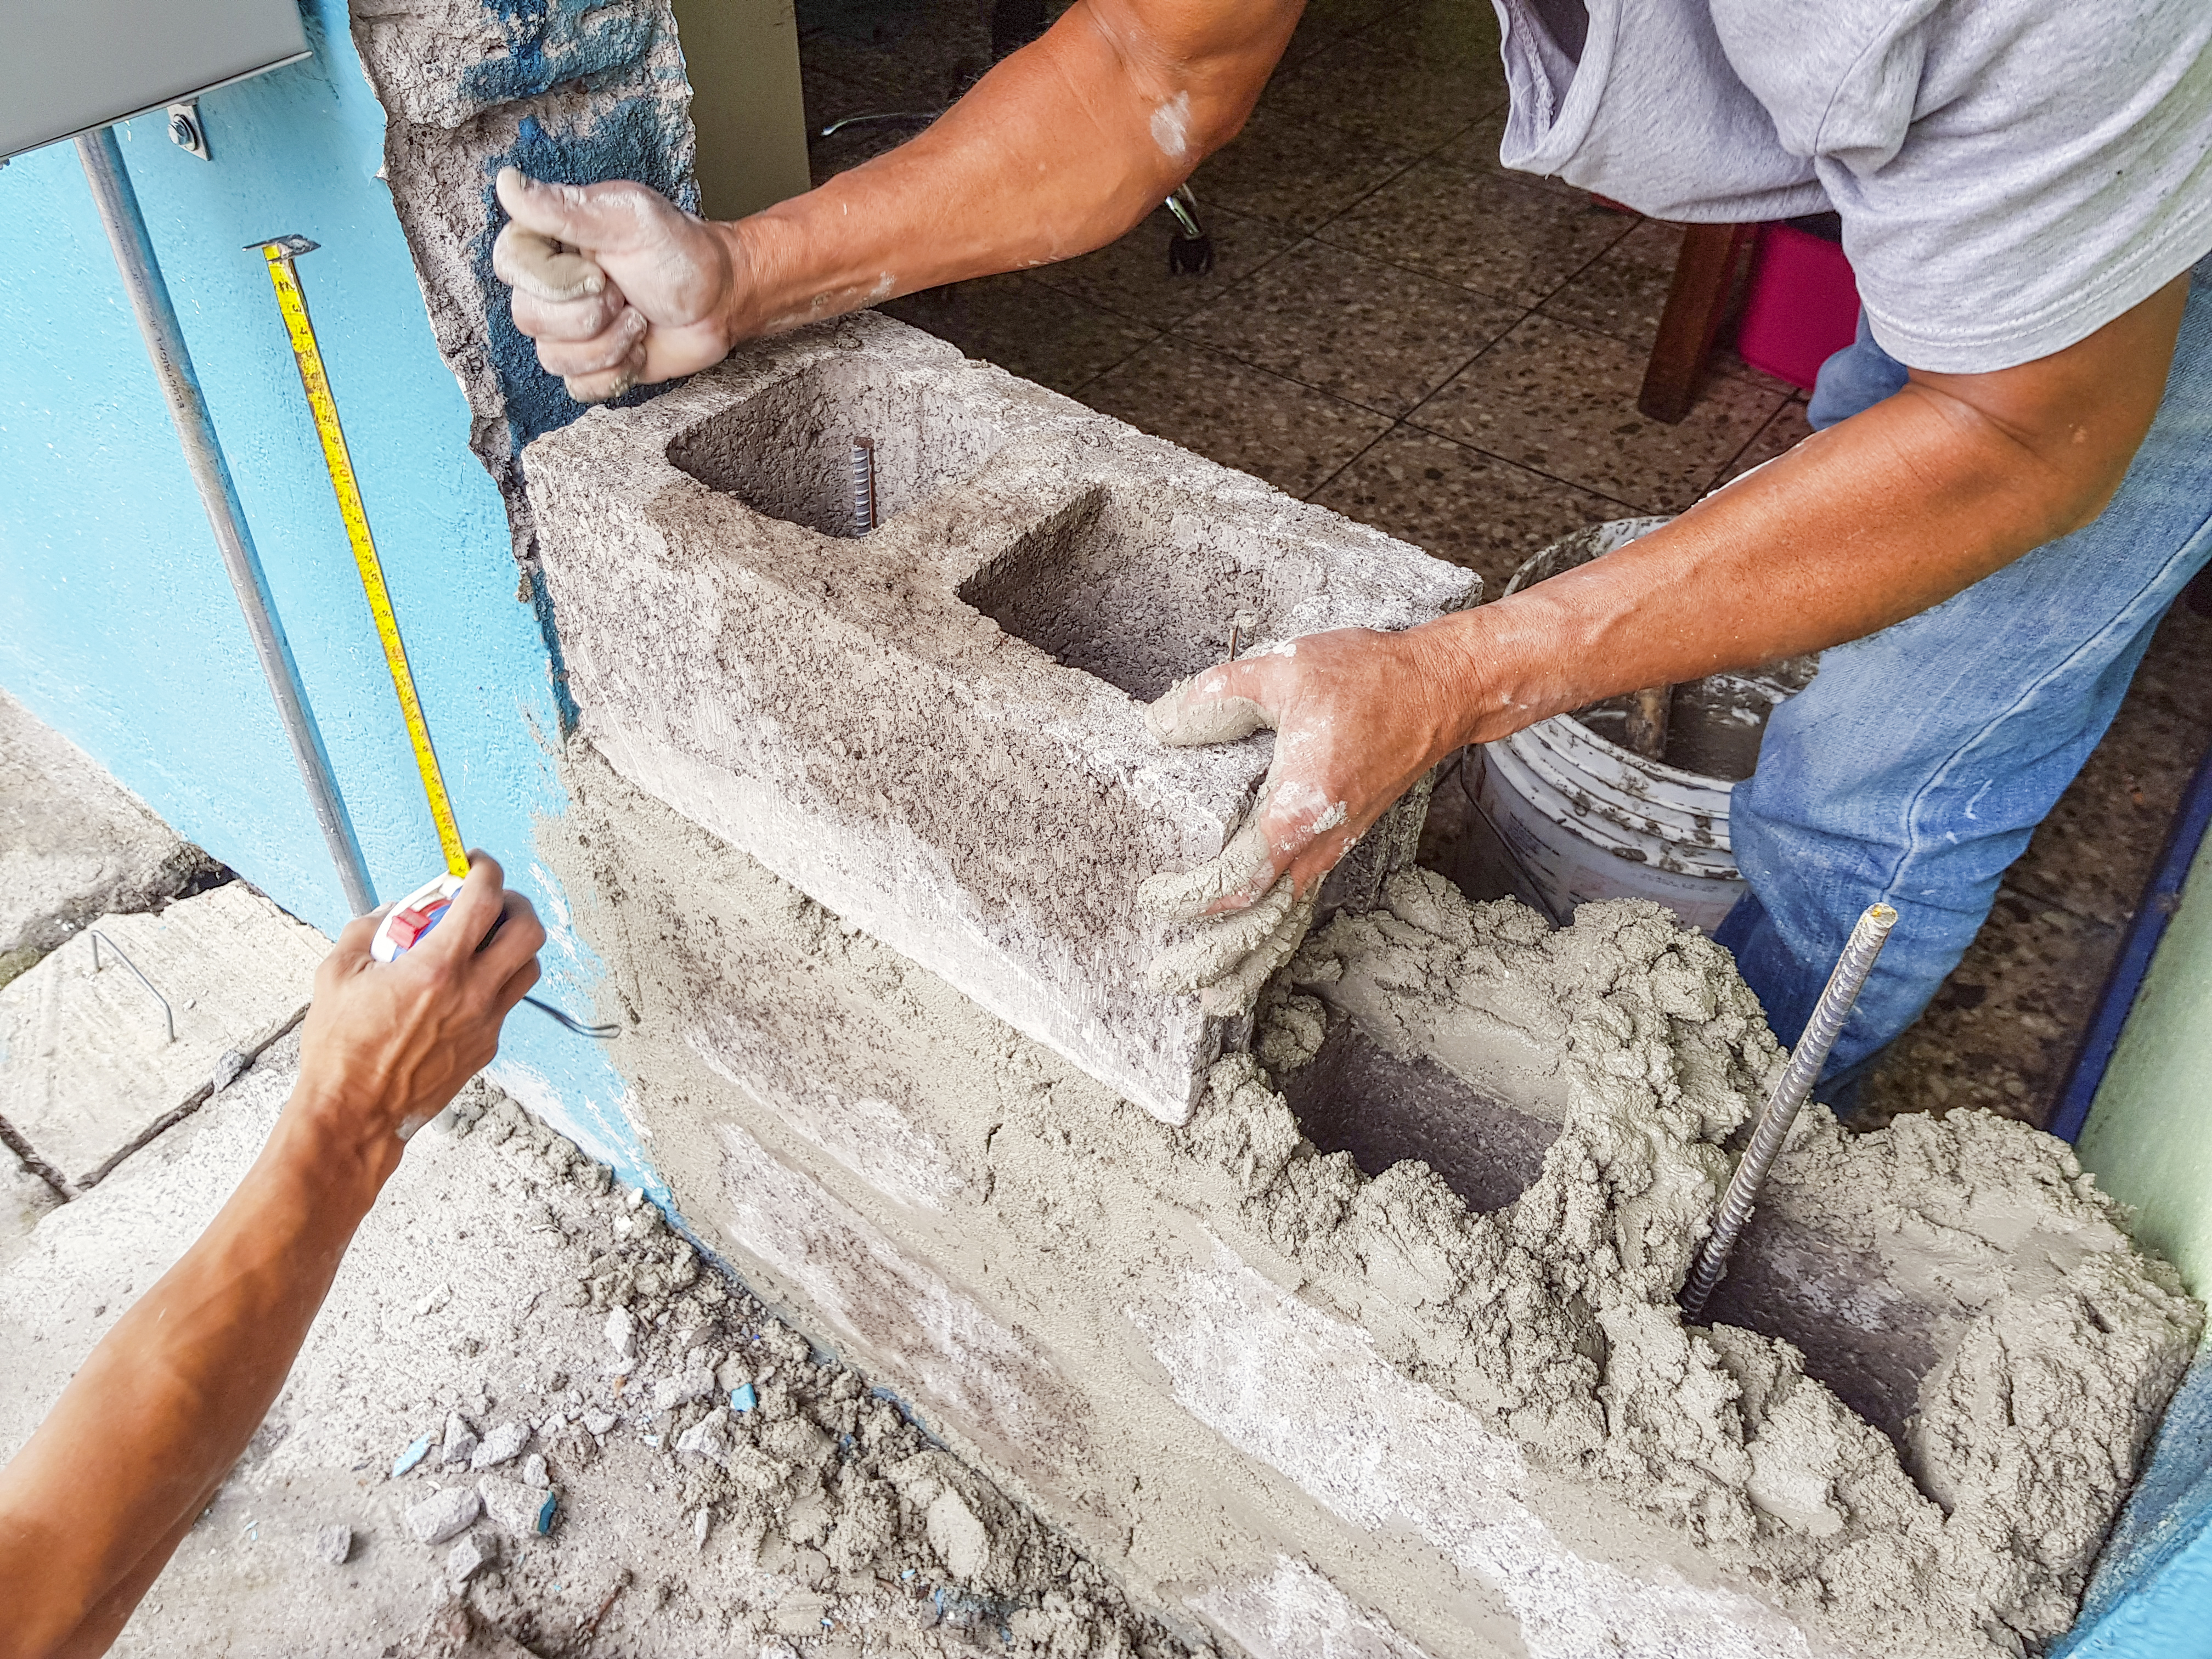 How to Fill Holes in a Cinder Block Wall | Home Guides | SF Gate